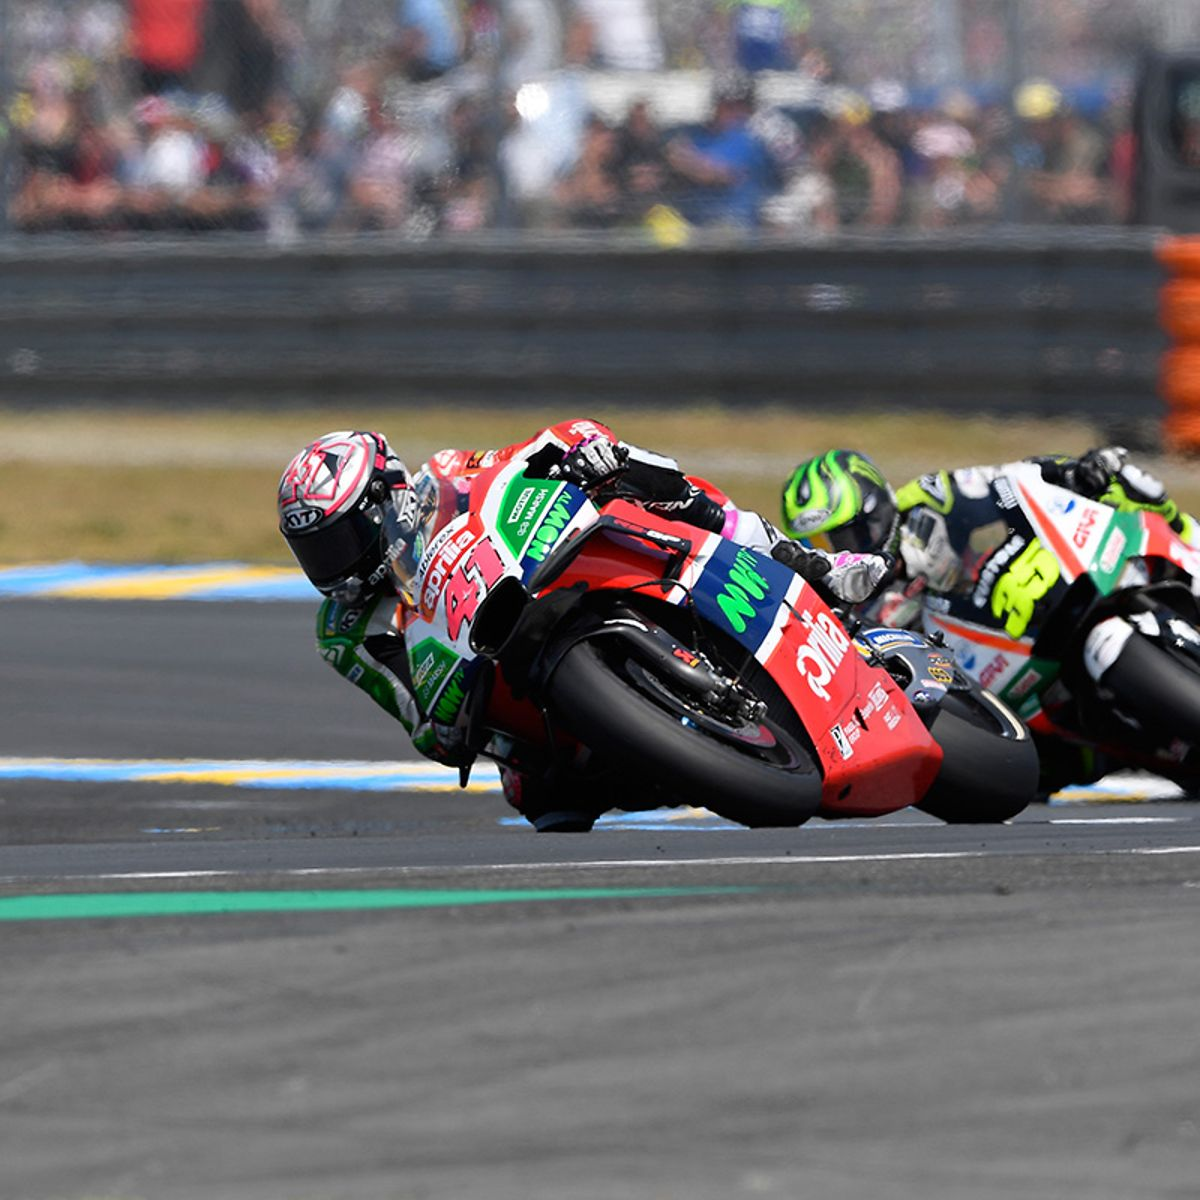 ALEIX ESPARGARÓ GOOD NINTH AT LE MANS_thumb